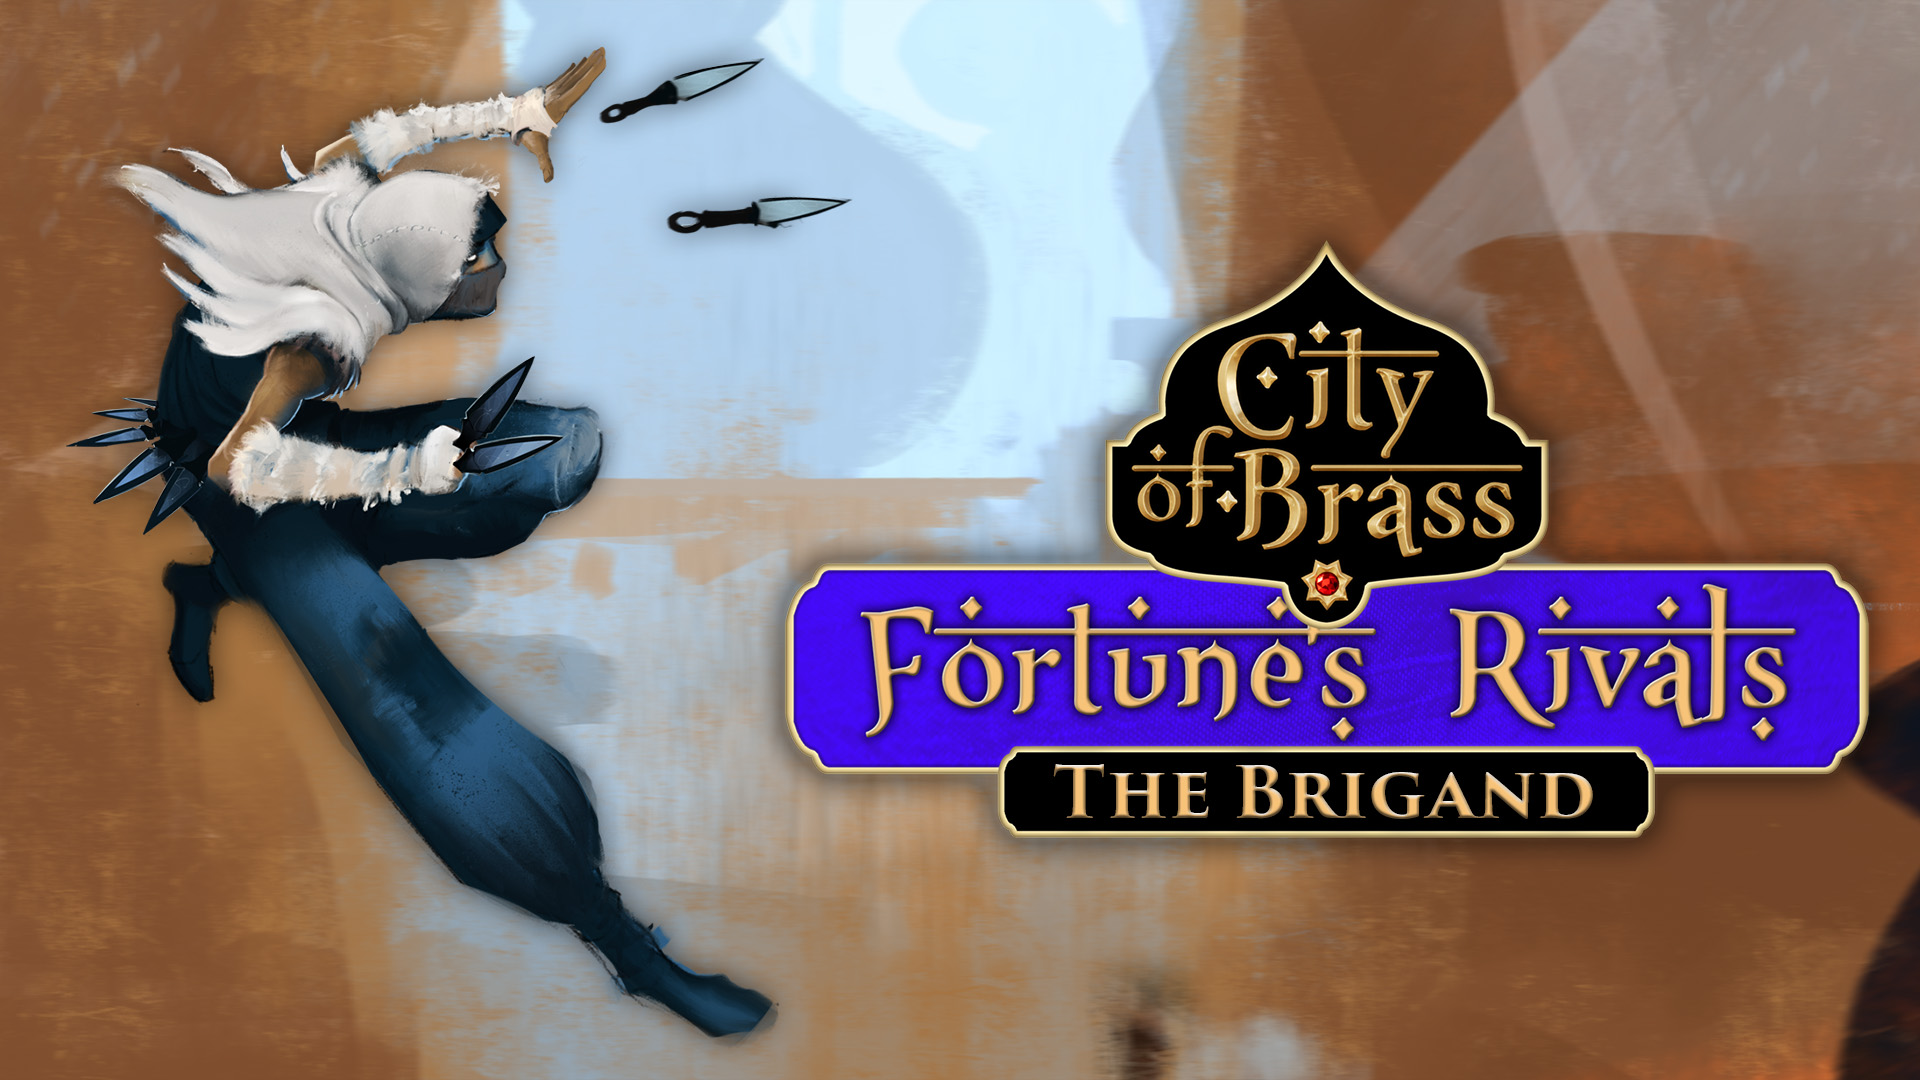 city of brass, fortune's rivals, fortunes rivals, city of brass fortunes rivals, city of brass update, fortunes rivals update, uppercut games, city of brass news, city of brass uppercut games, gigamax games, video game news, gaming news